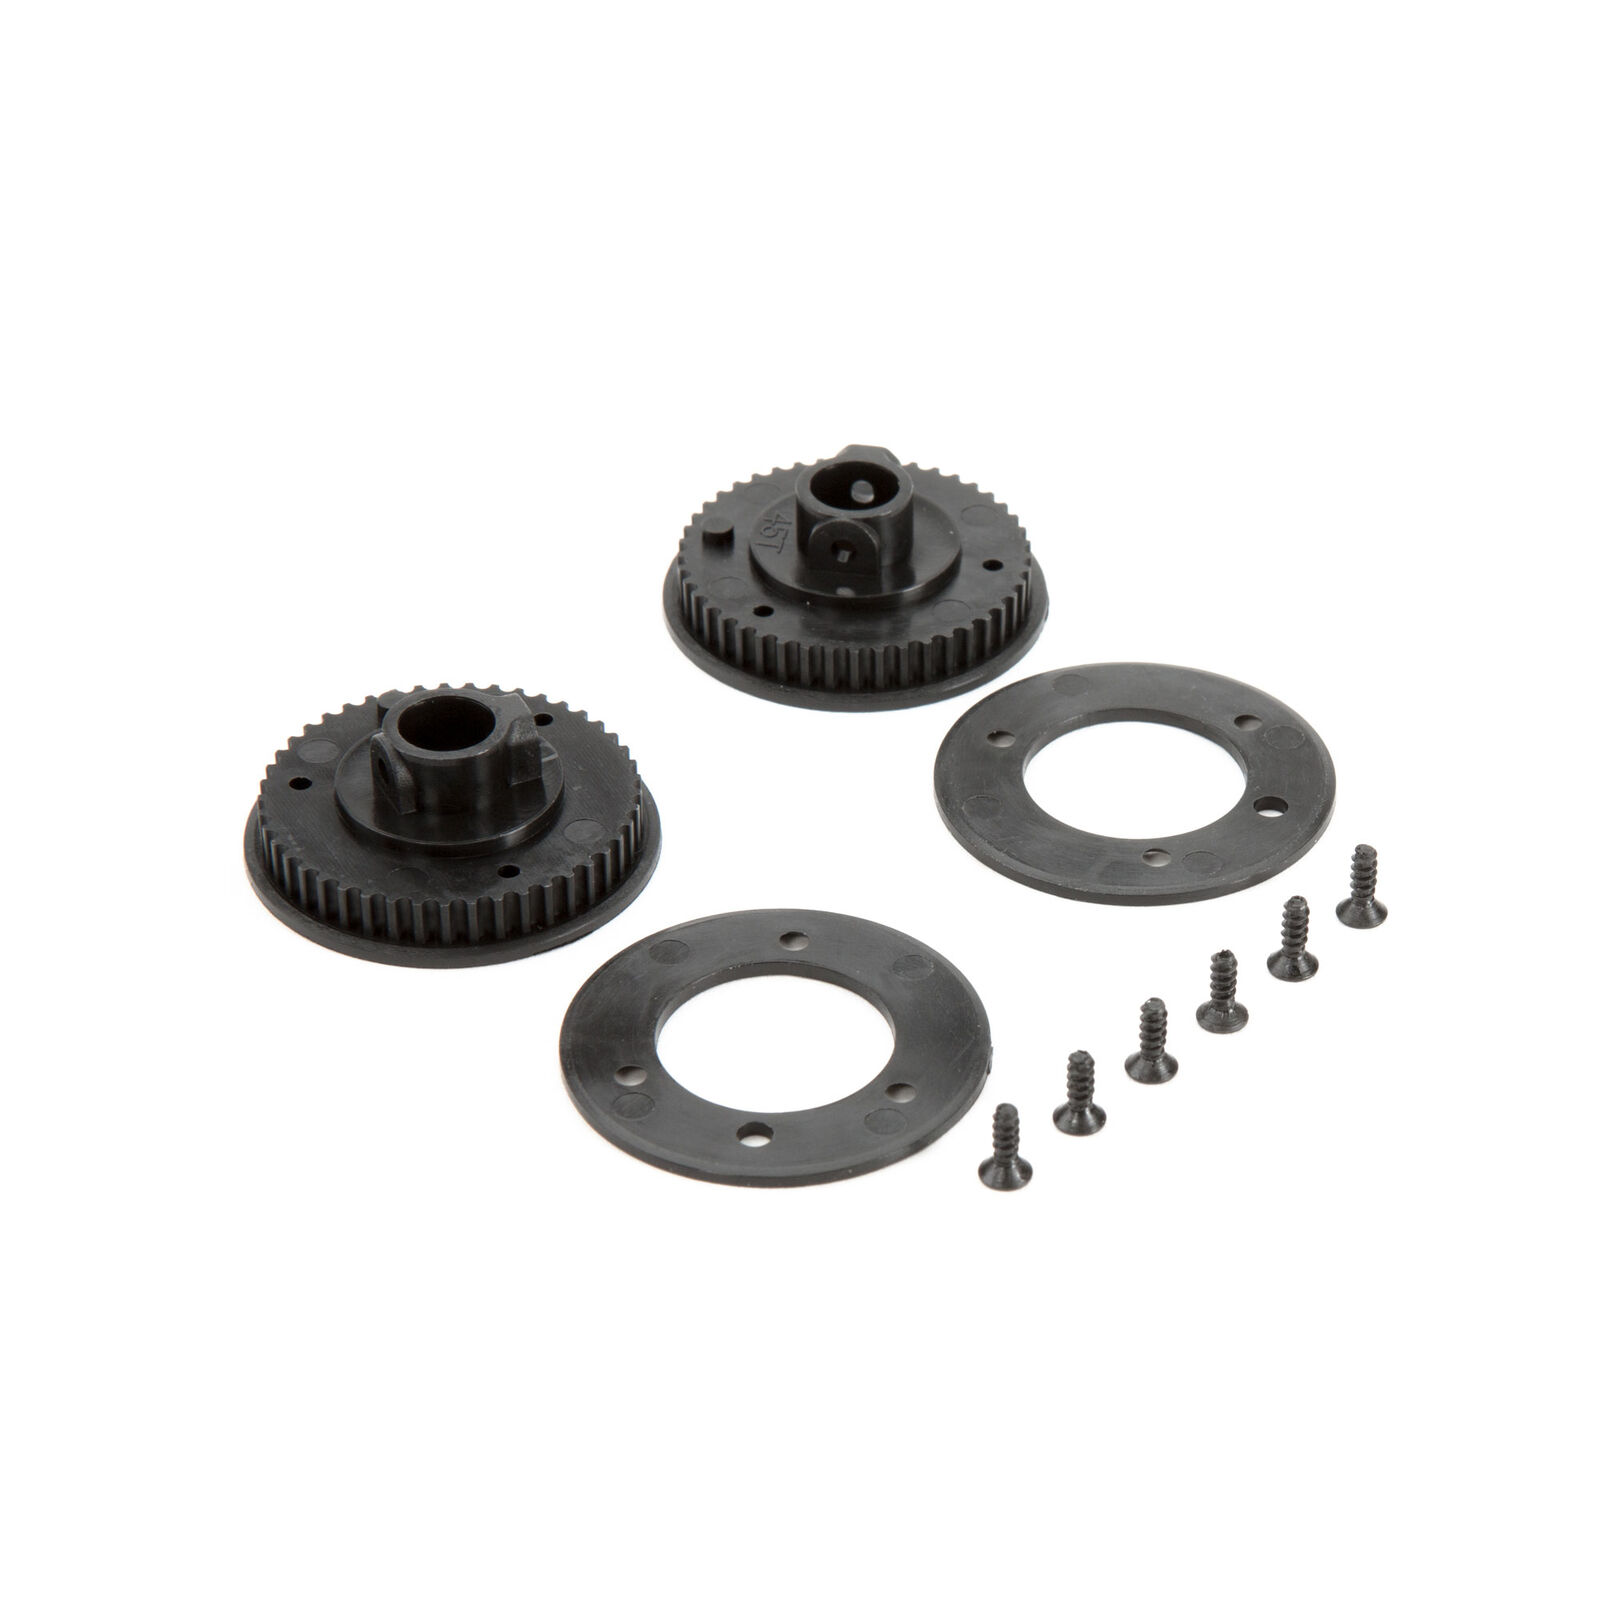 Front Drive Pulley 45t: 270 CFX, Fusion 270